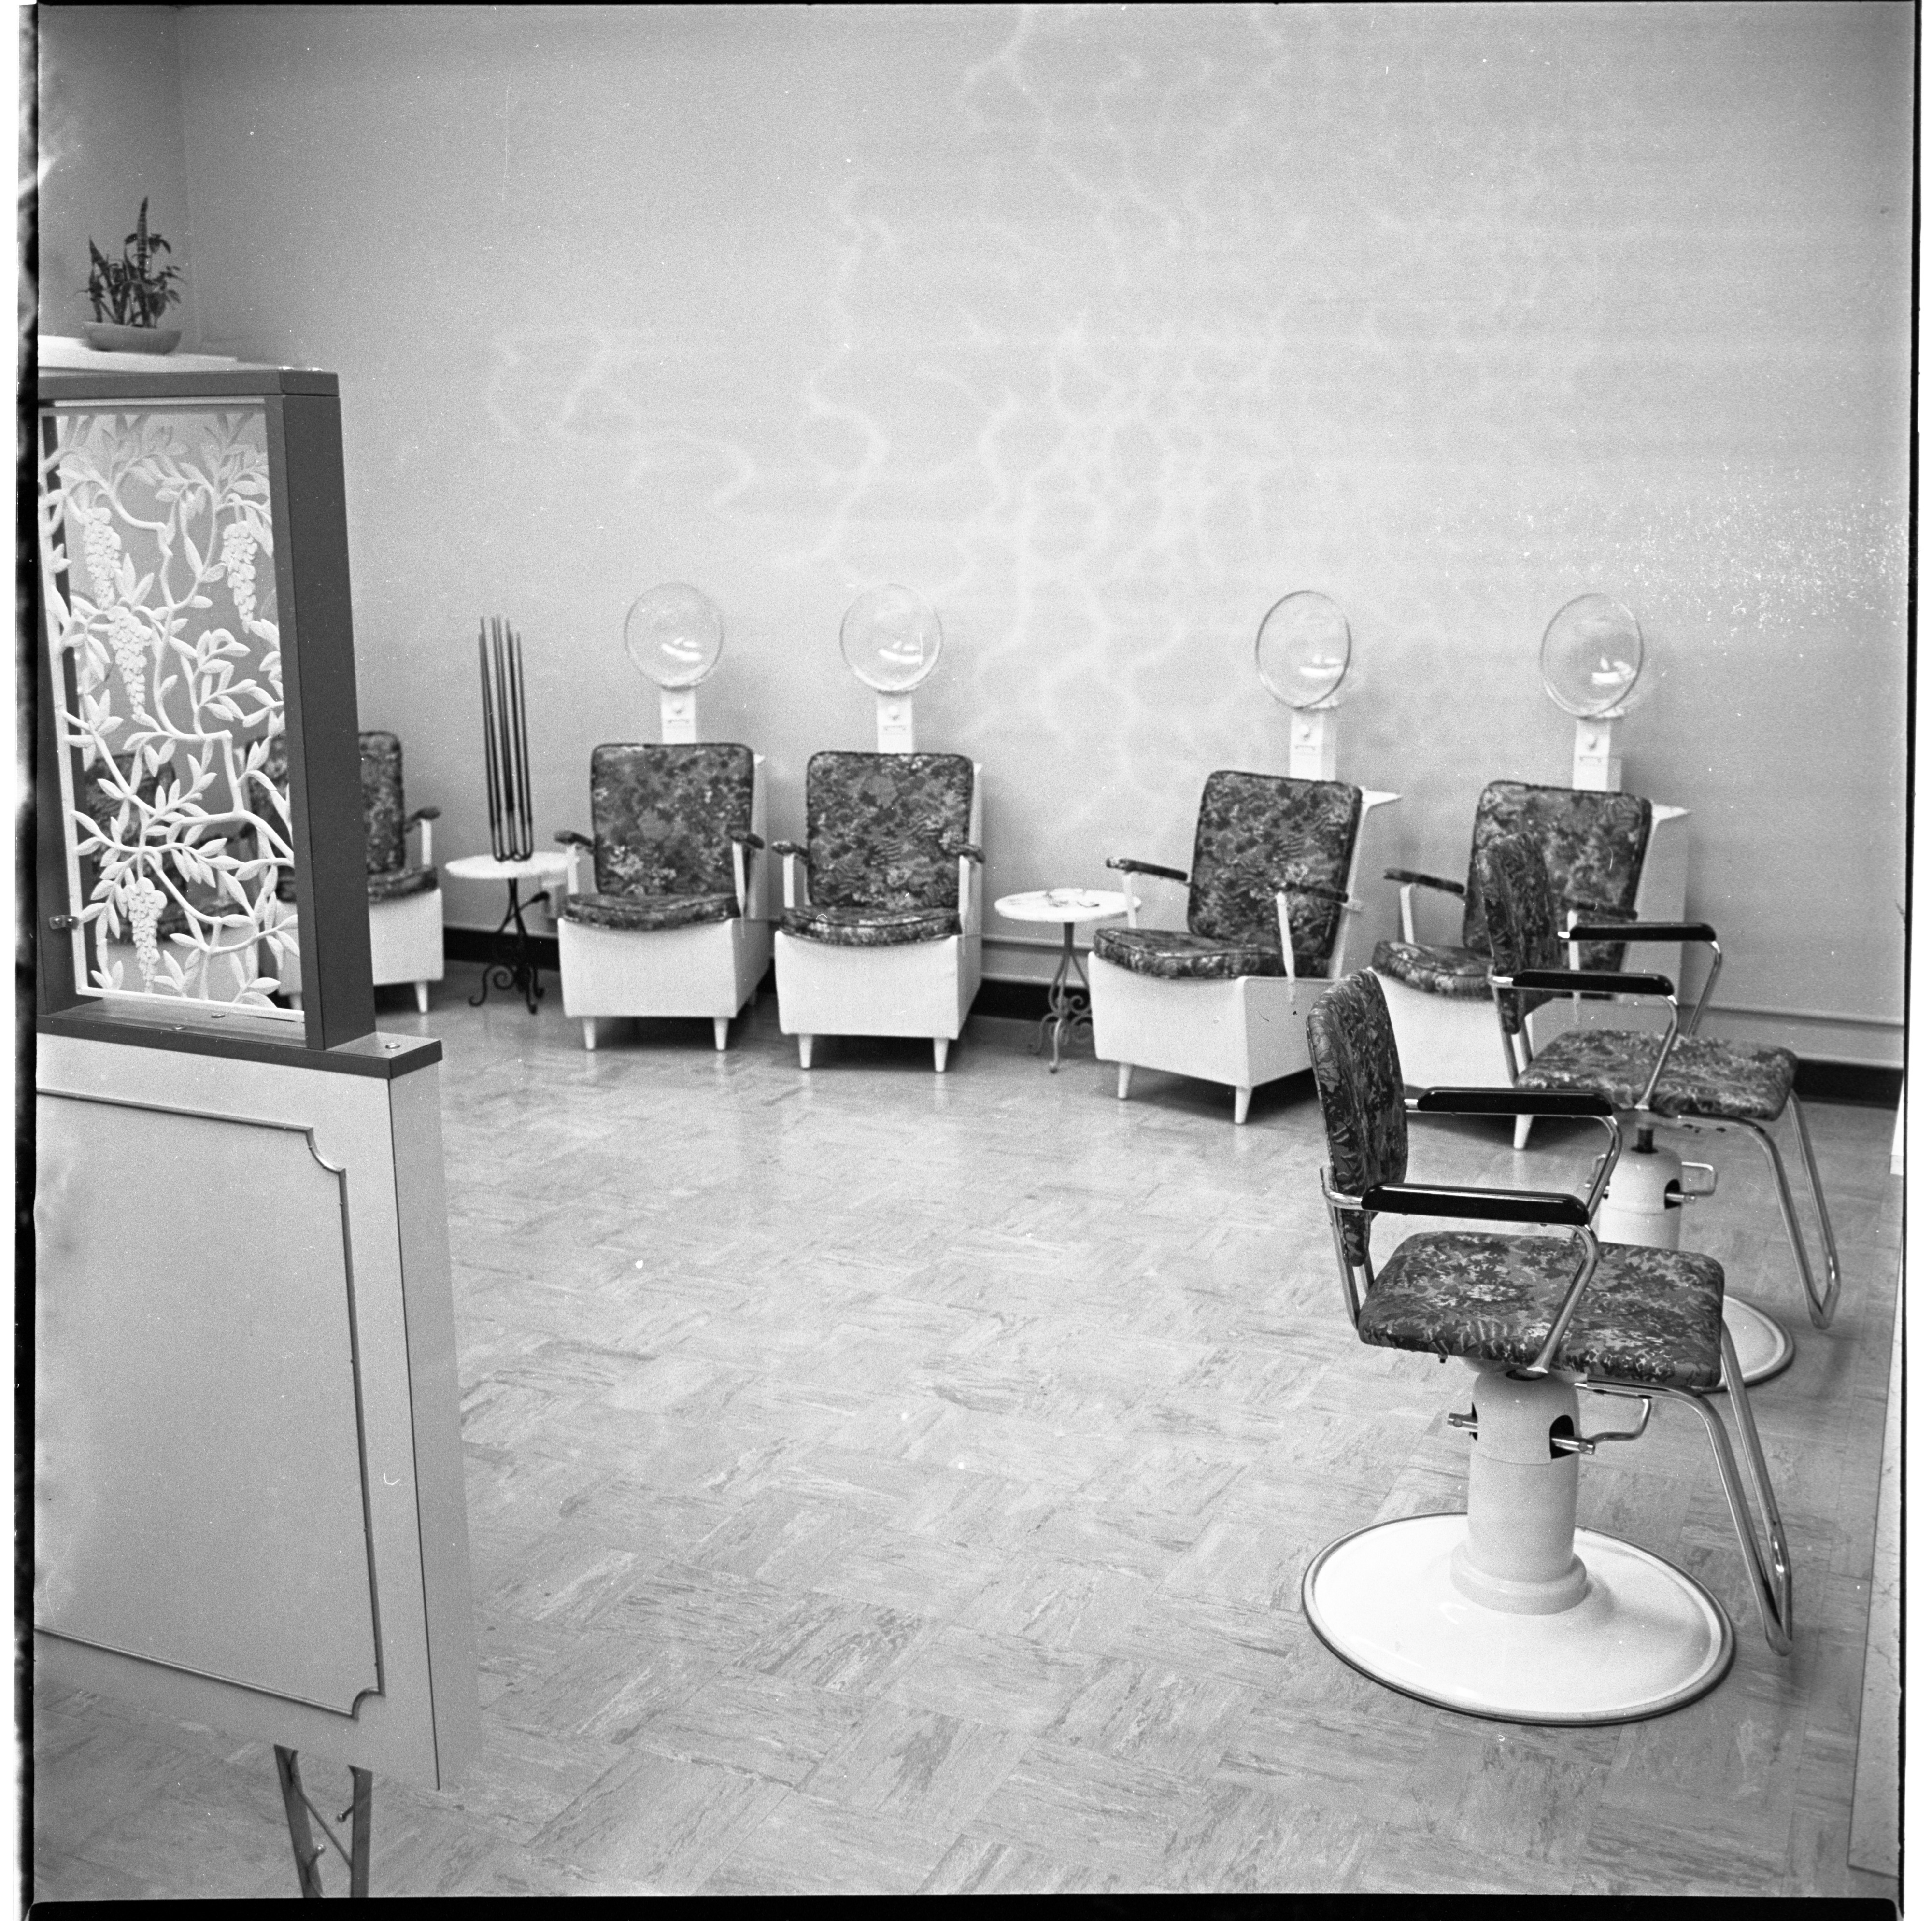 The Blue Wig Beauty Salon - Interior, February 1966 image